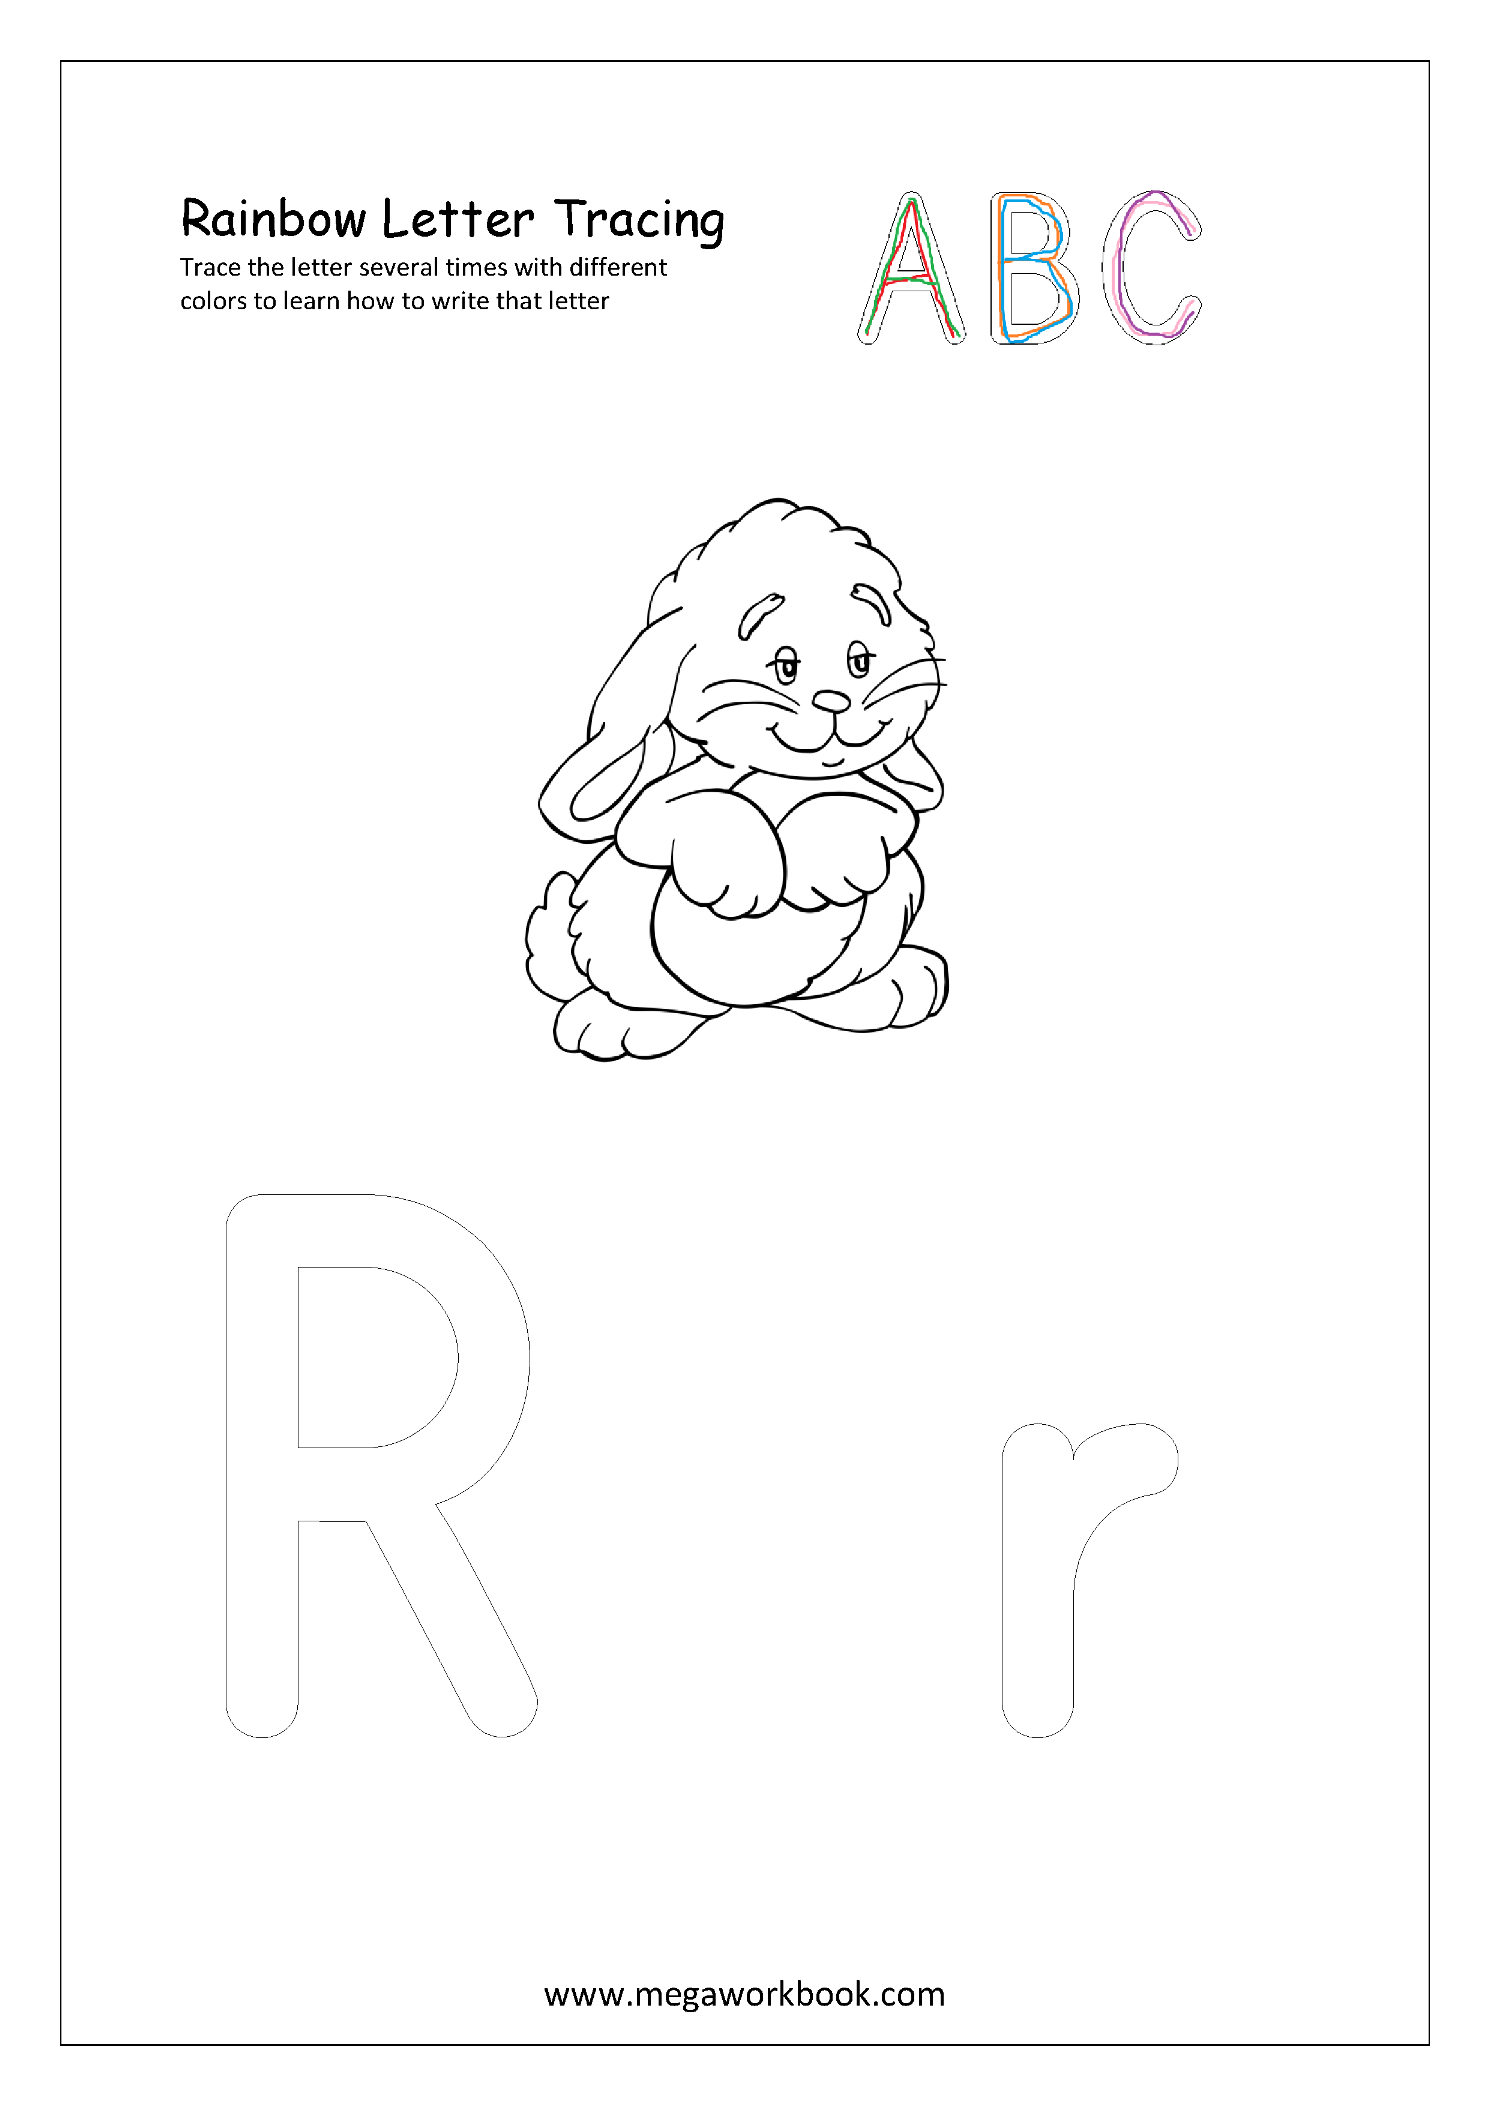 Free English Worksheets - Rainbow Letter Tracing inside Rainbow Tracing Letters